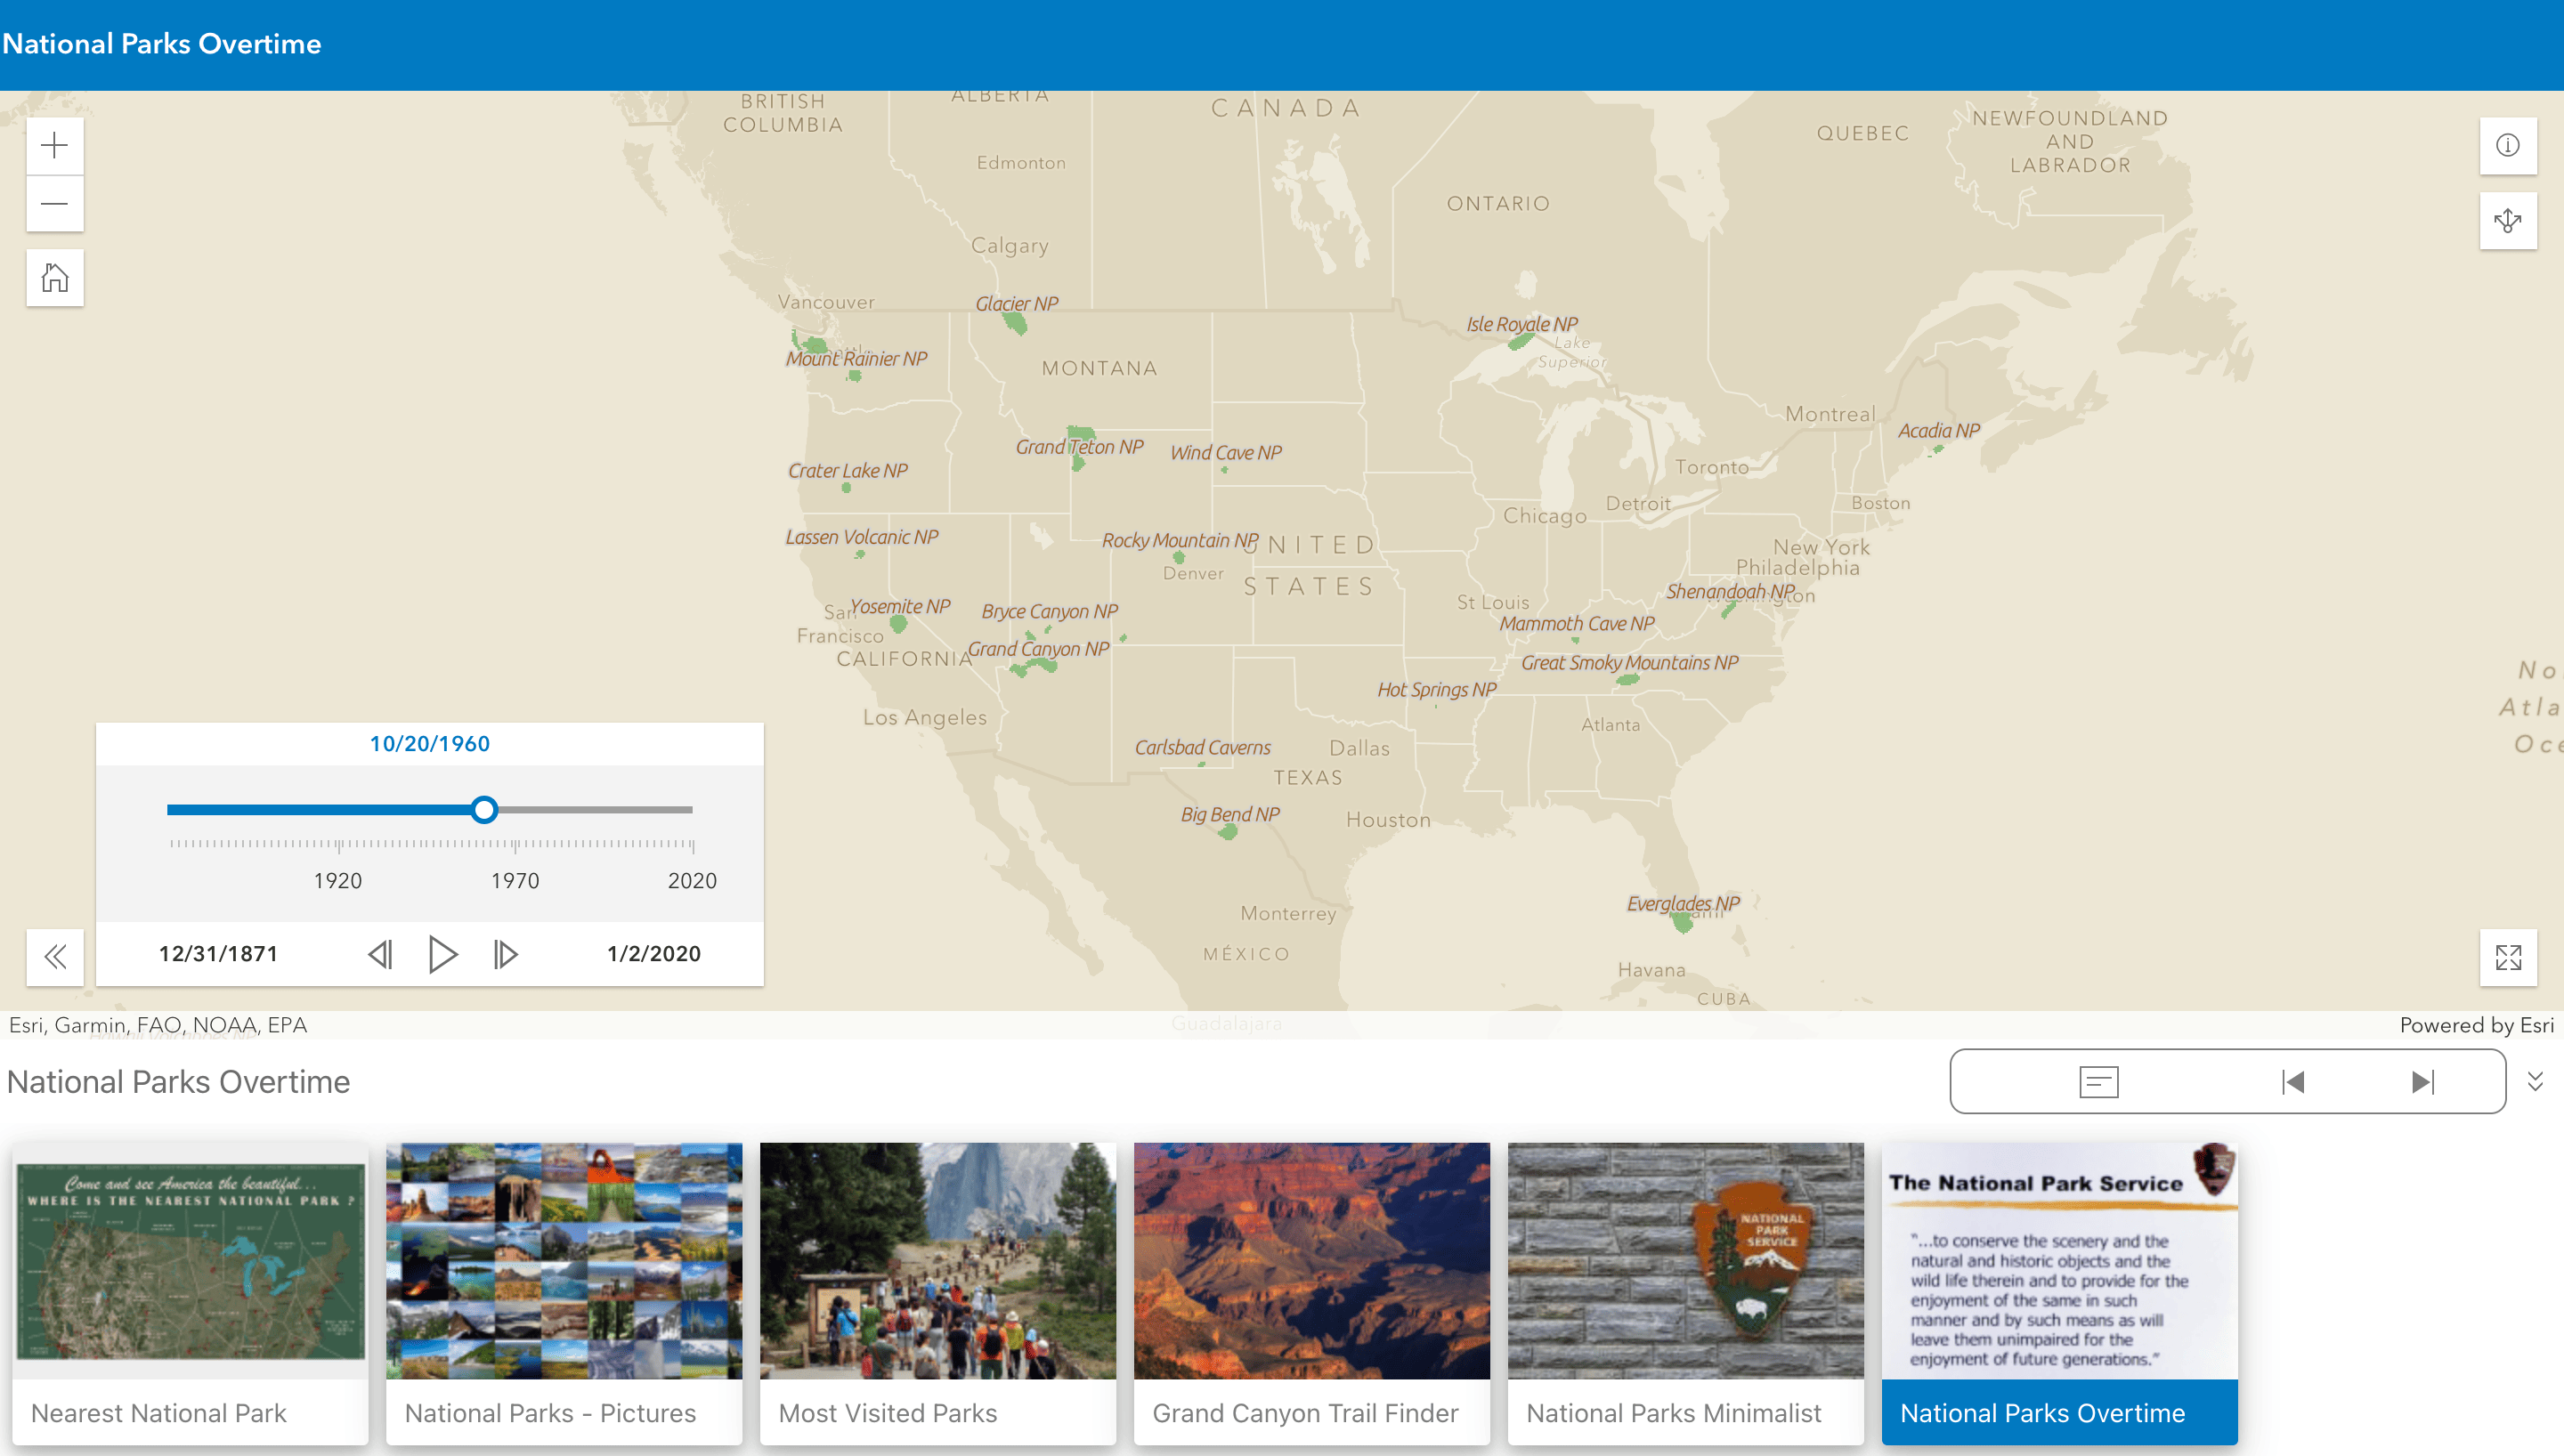 A Portfolio Instant App opened to the Media Map section that highlights the number of National Parks in 1960